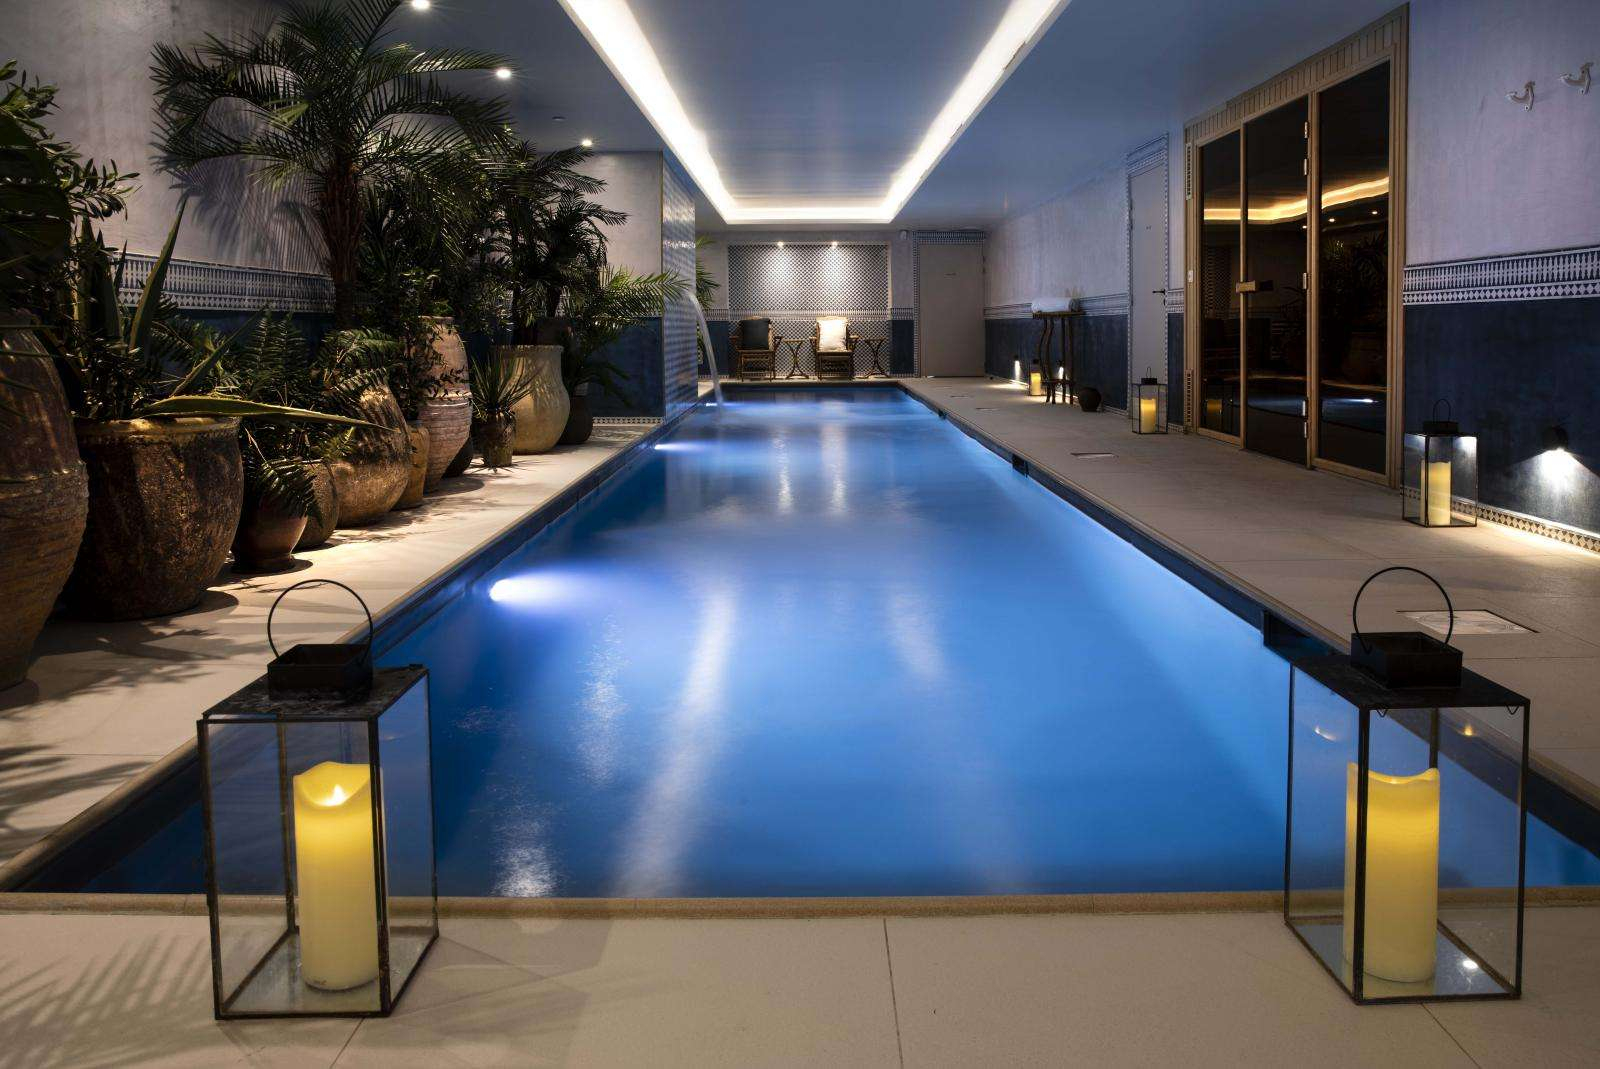 Monte Cristo Hotel Paris | 4-Star Hotel Paris 5Th | Wellness destiné Hotel Paris Piscine